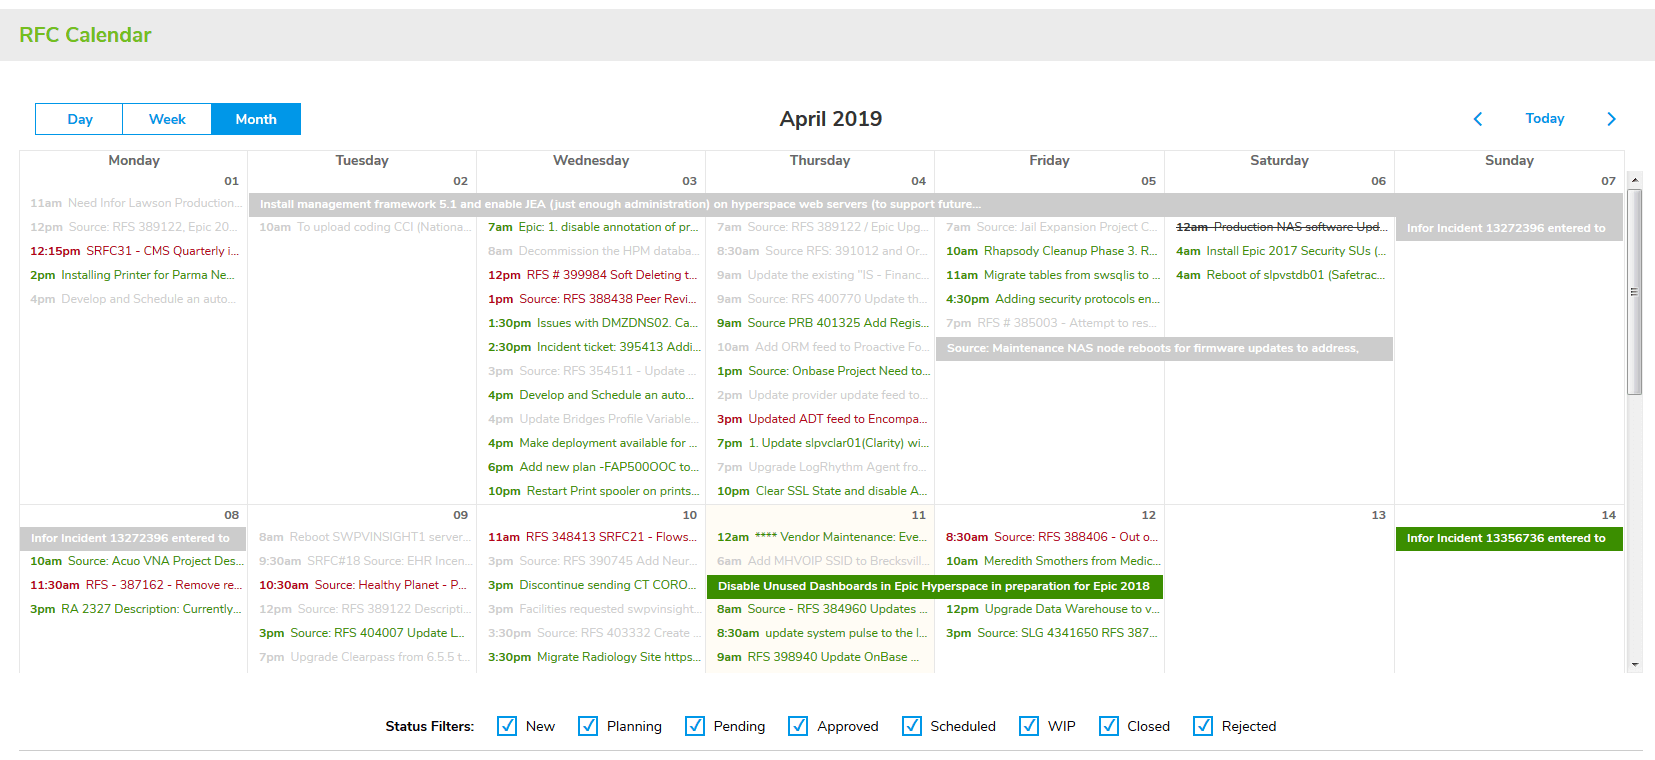 Change Management RFC Calendar